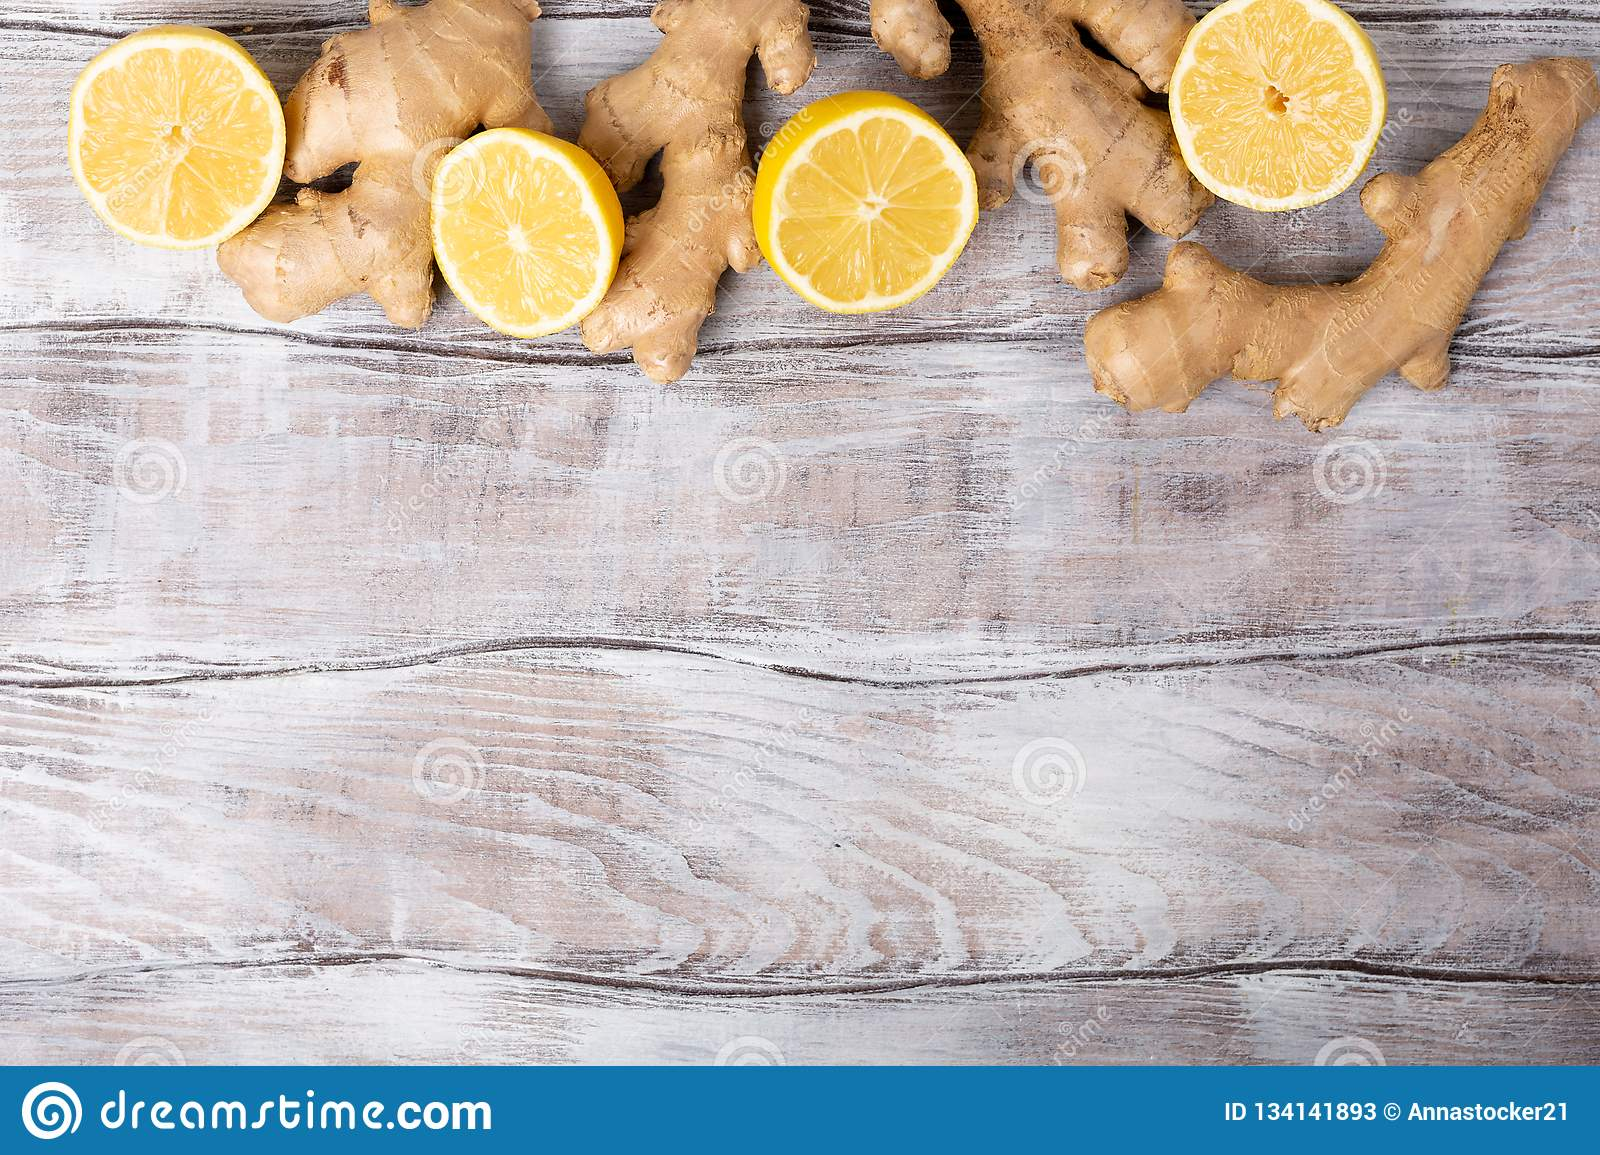 Background. Healthy food. Ingredients for detox lemonade, lemon and ginger on white wooden background, top view, copy